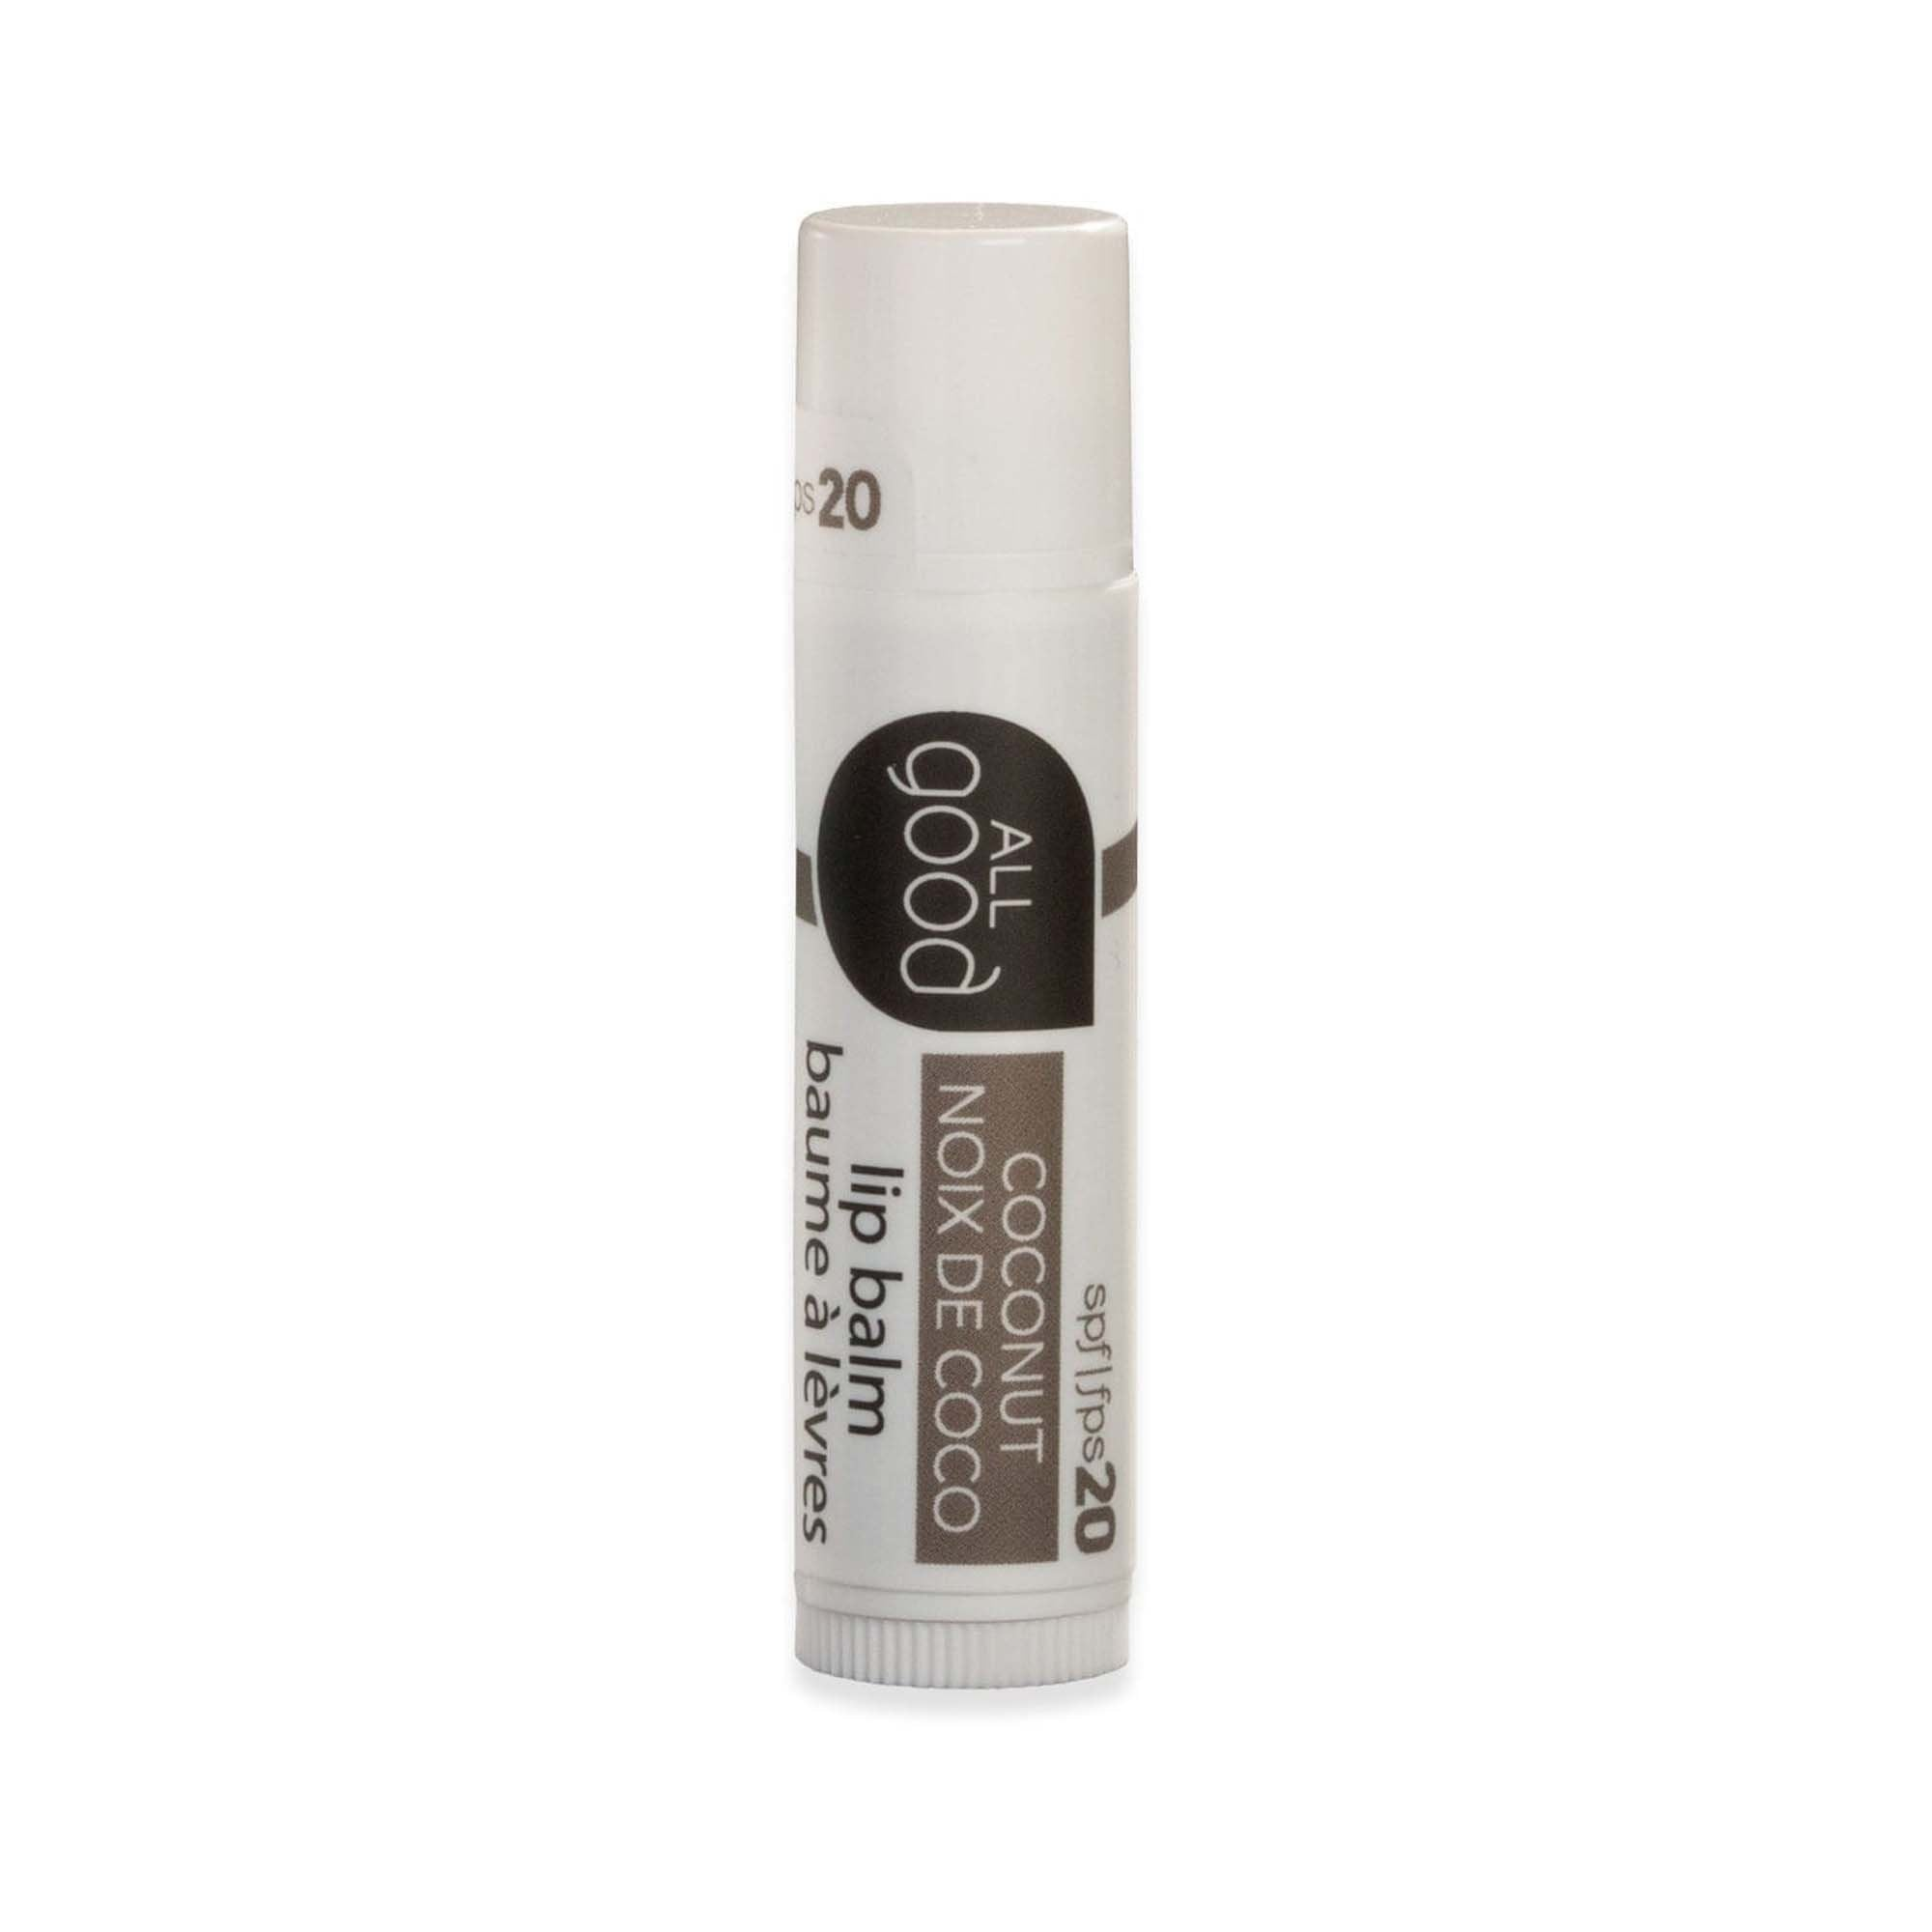 white and brown lip balm tube. 4.25 g. spf 20. coconut flavor